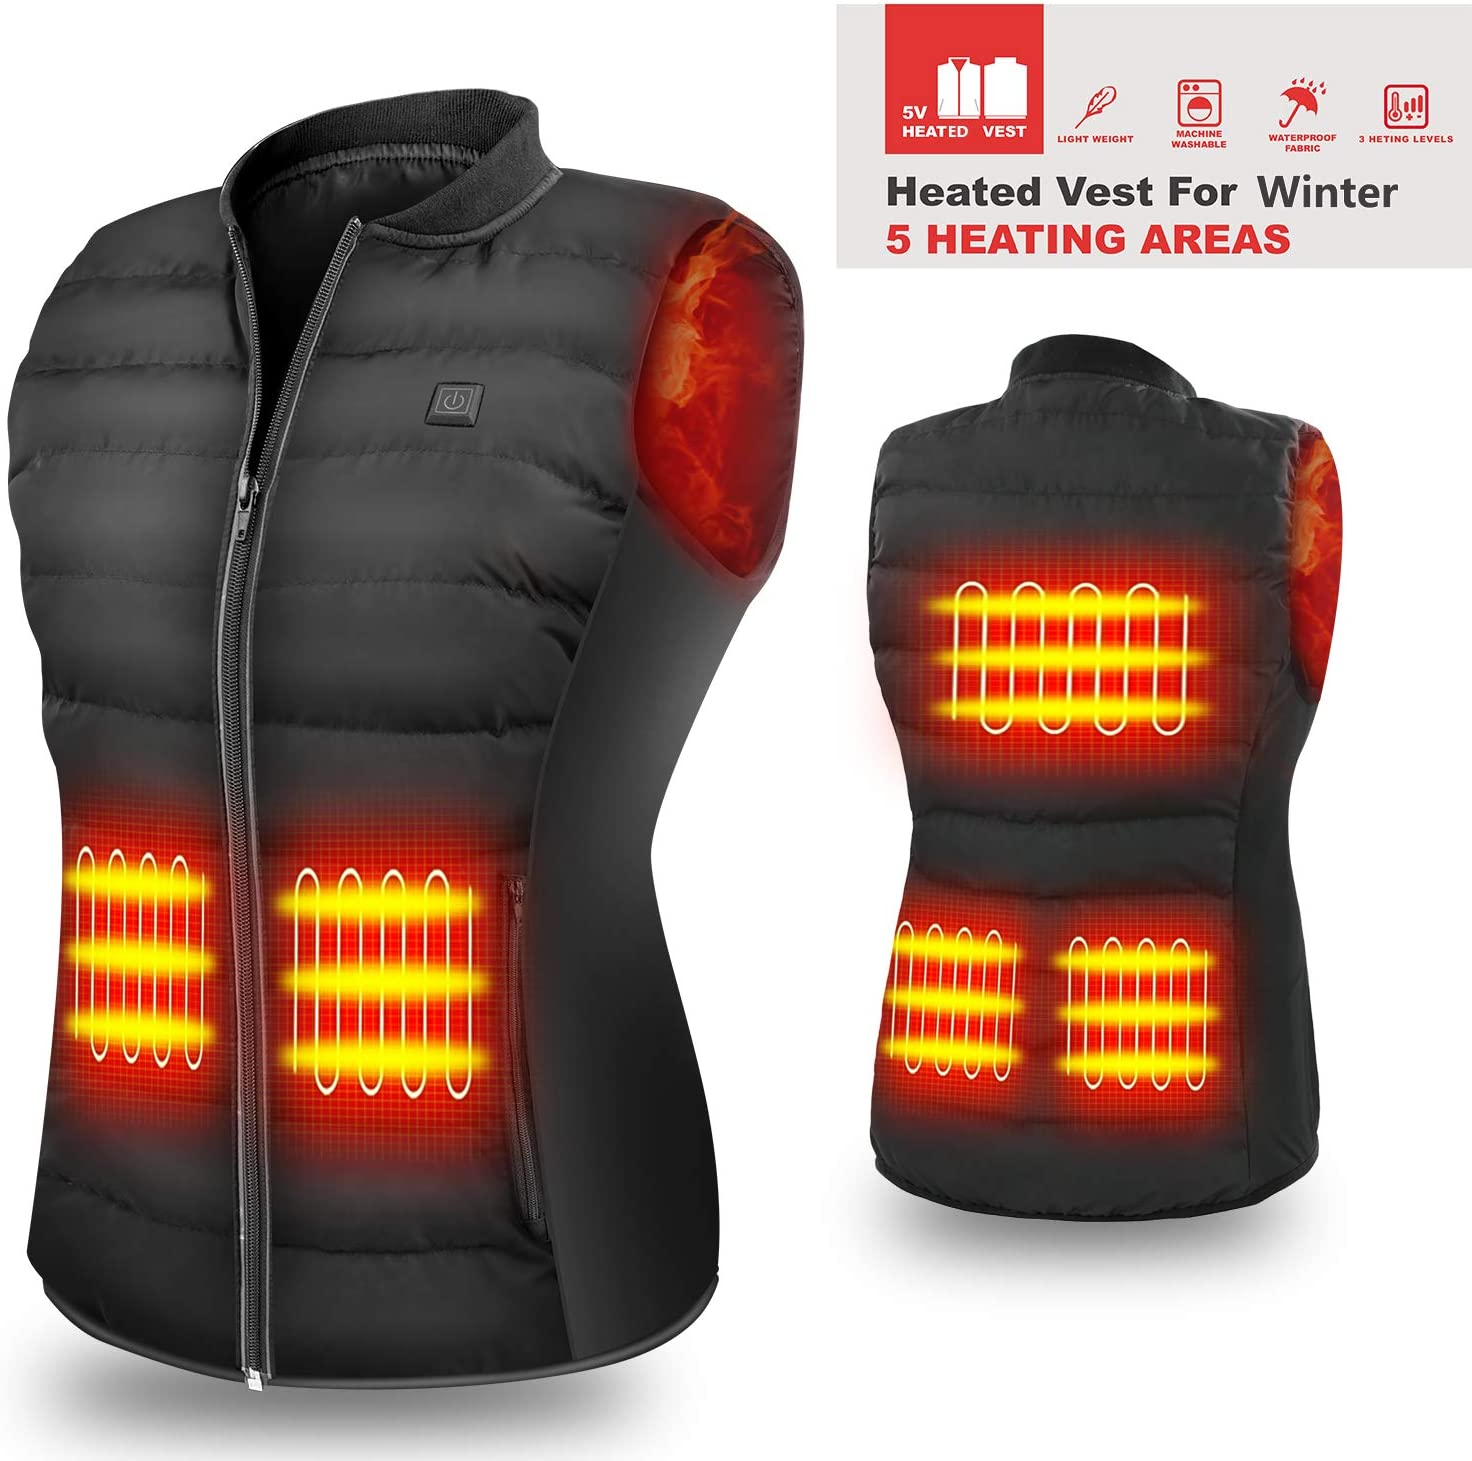 HOOCUCO 5V Heated Vest(Power Bank Need Purchase Separately), Size Adjustable USB Charging,3 Temp Setting Heating Warm Vest for Outdoor Camping Hiking Golf Rechargeable Heated Clothes Warm for Men WOM